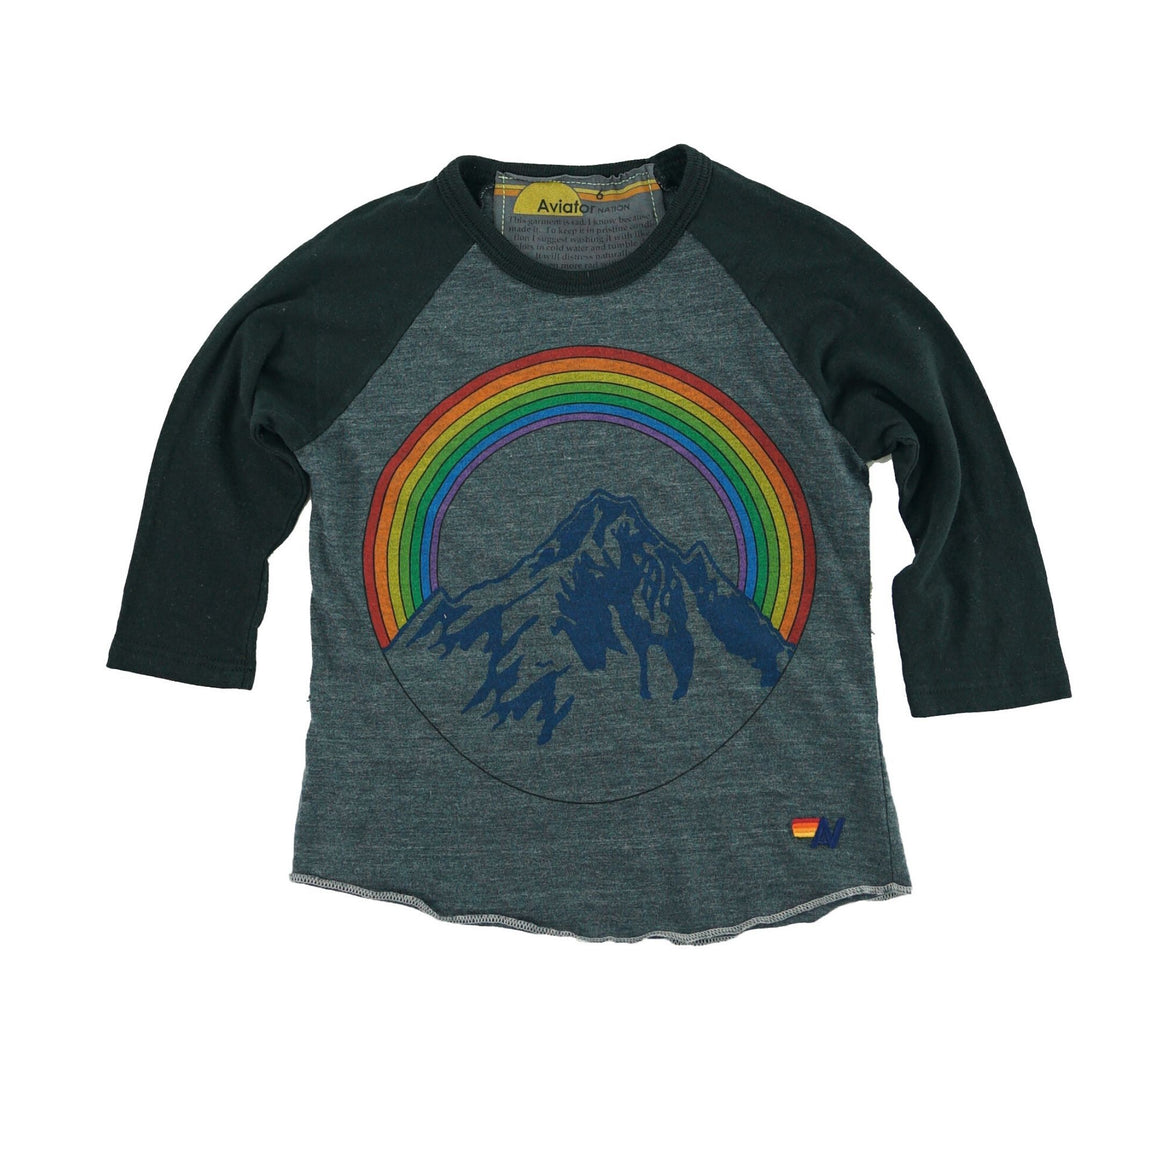 Aviator Nation - Kid's Mountain Rainbow Baseball Tee - Coal Short Sleeve Shirts Aviator Nation